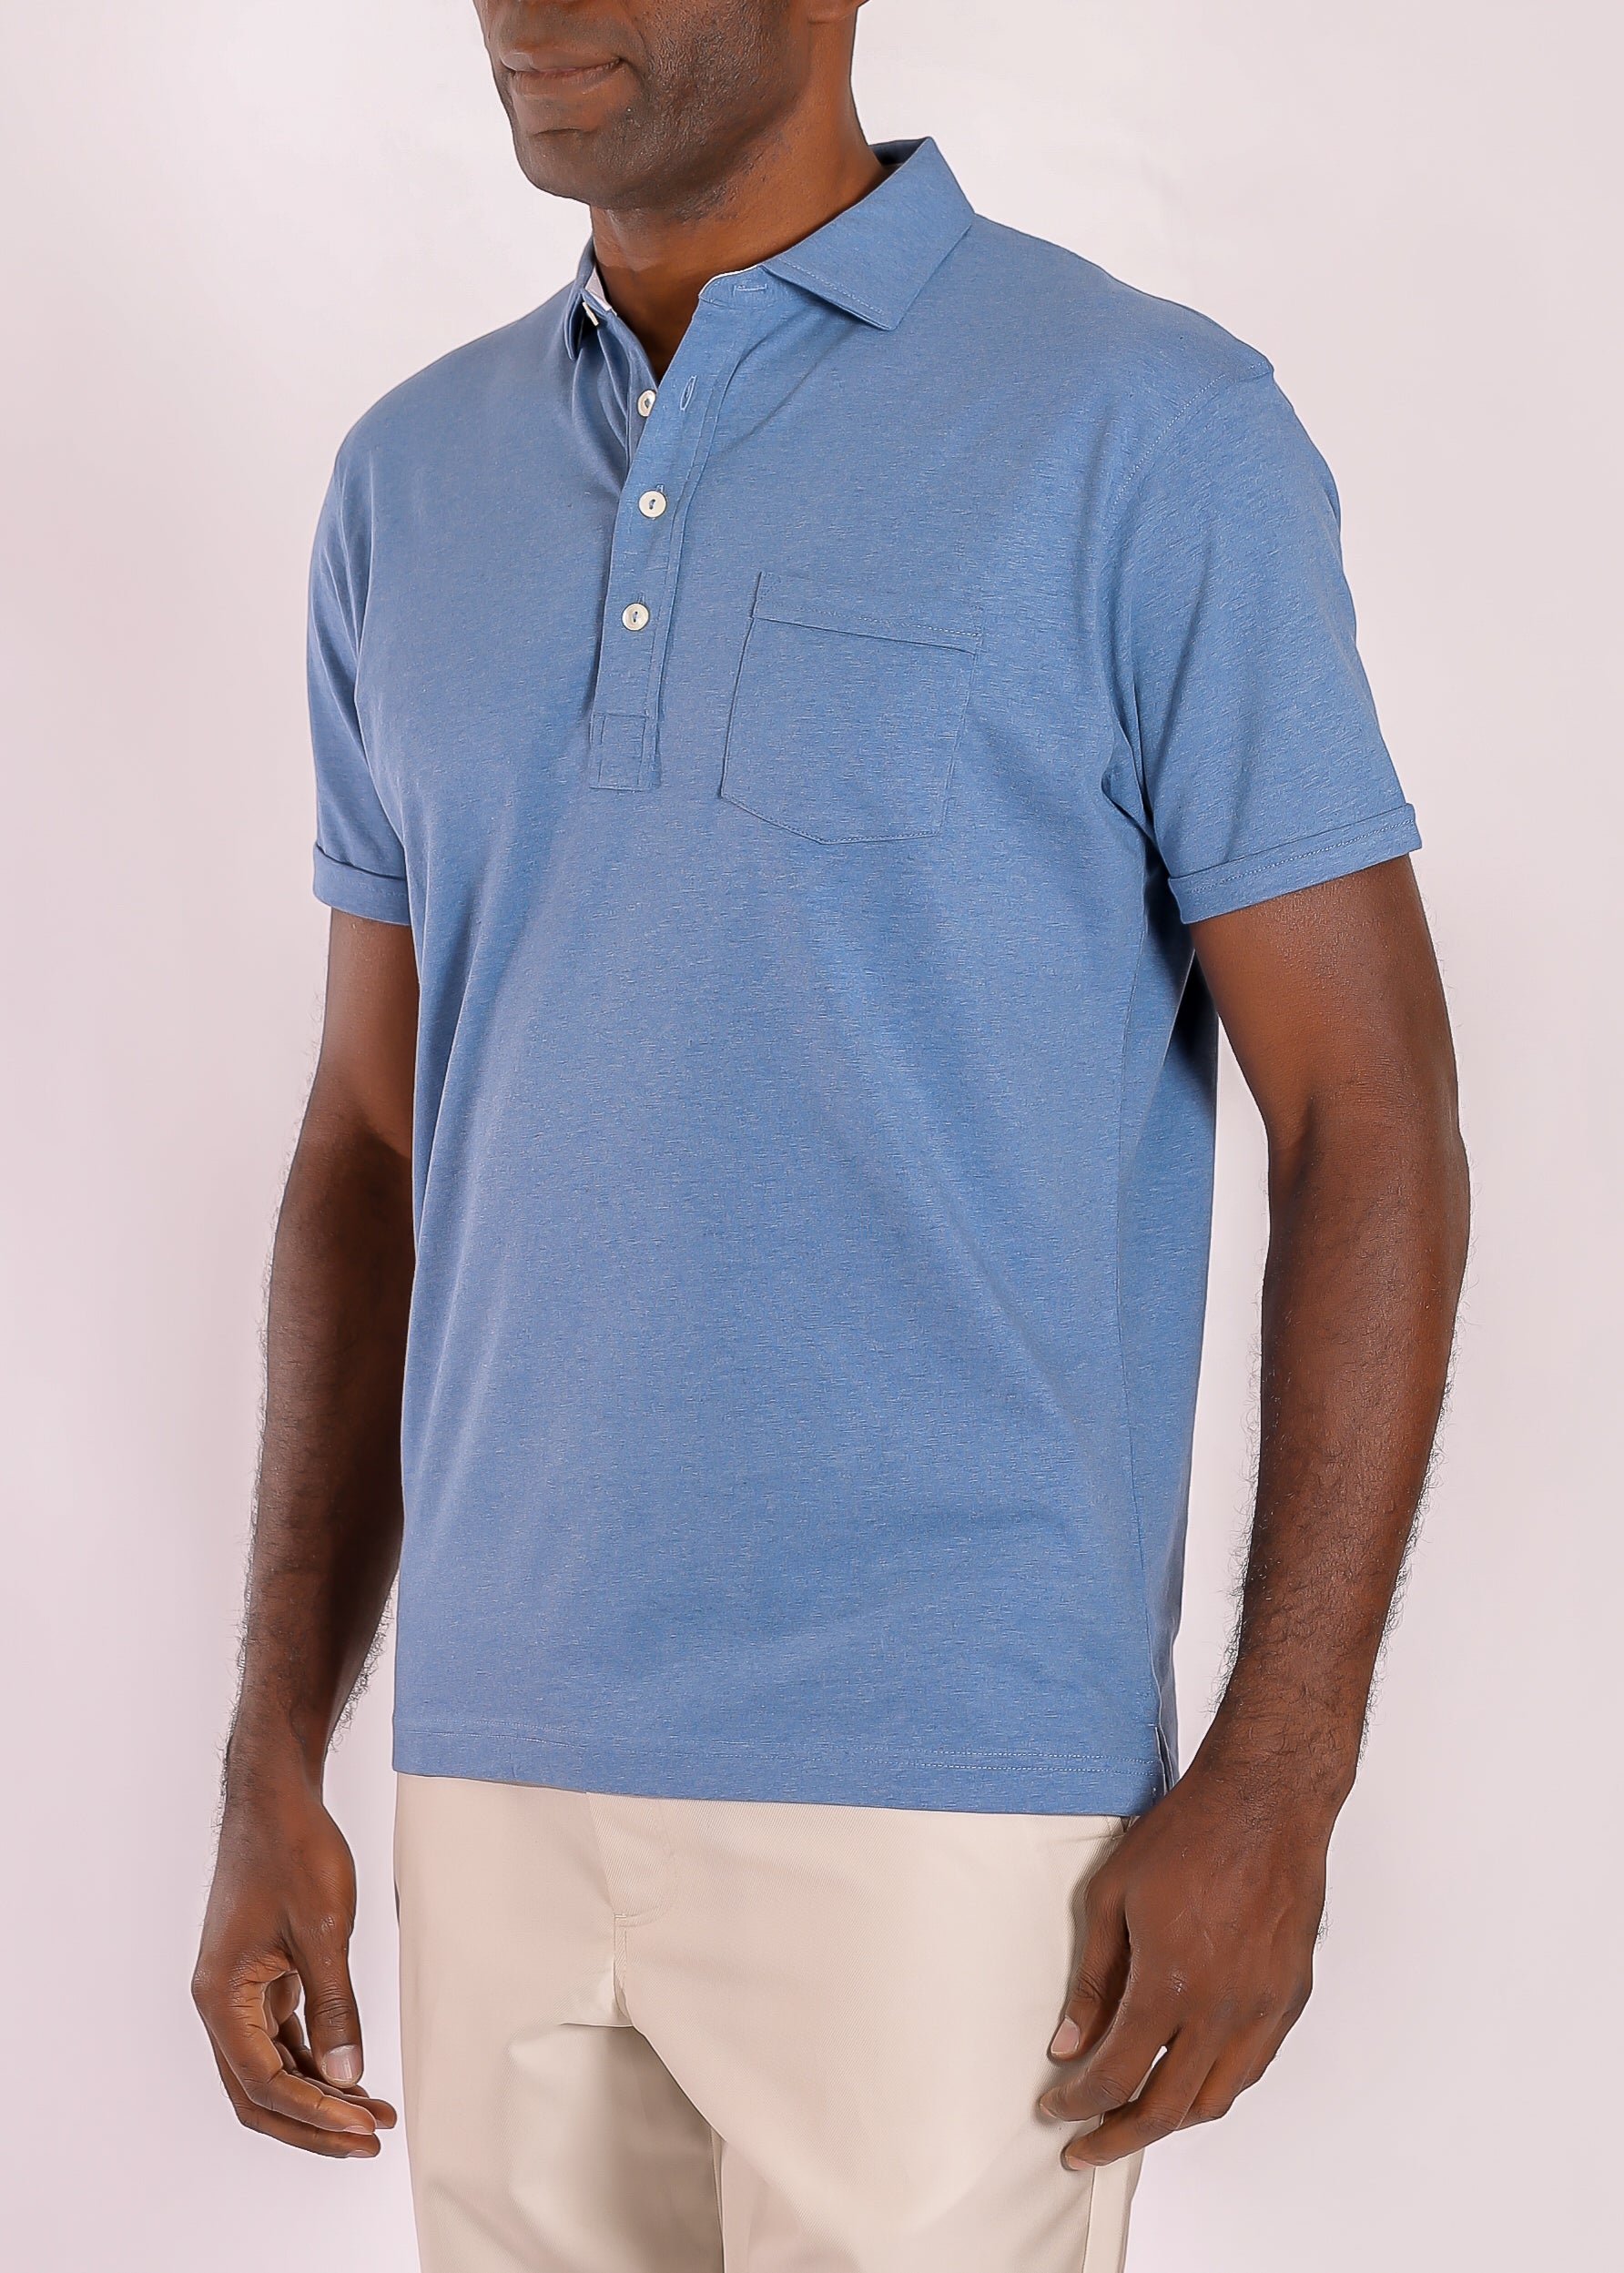 Morgan Polo Solid with Pocket - Chambray Heather